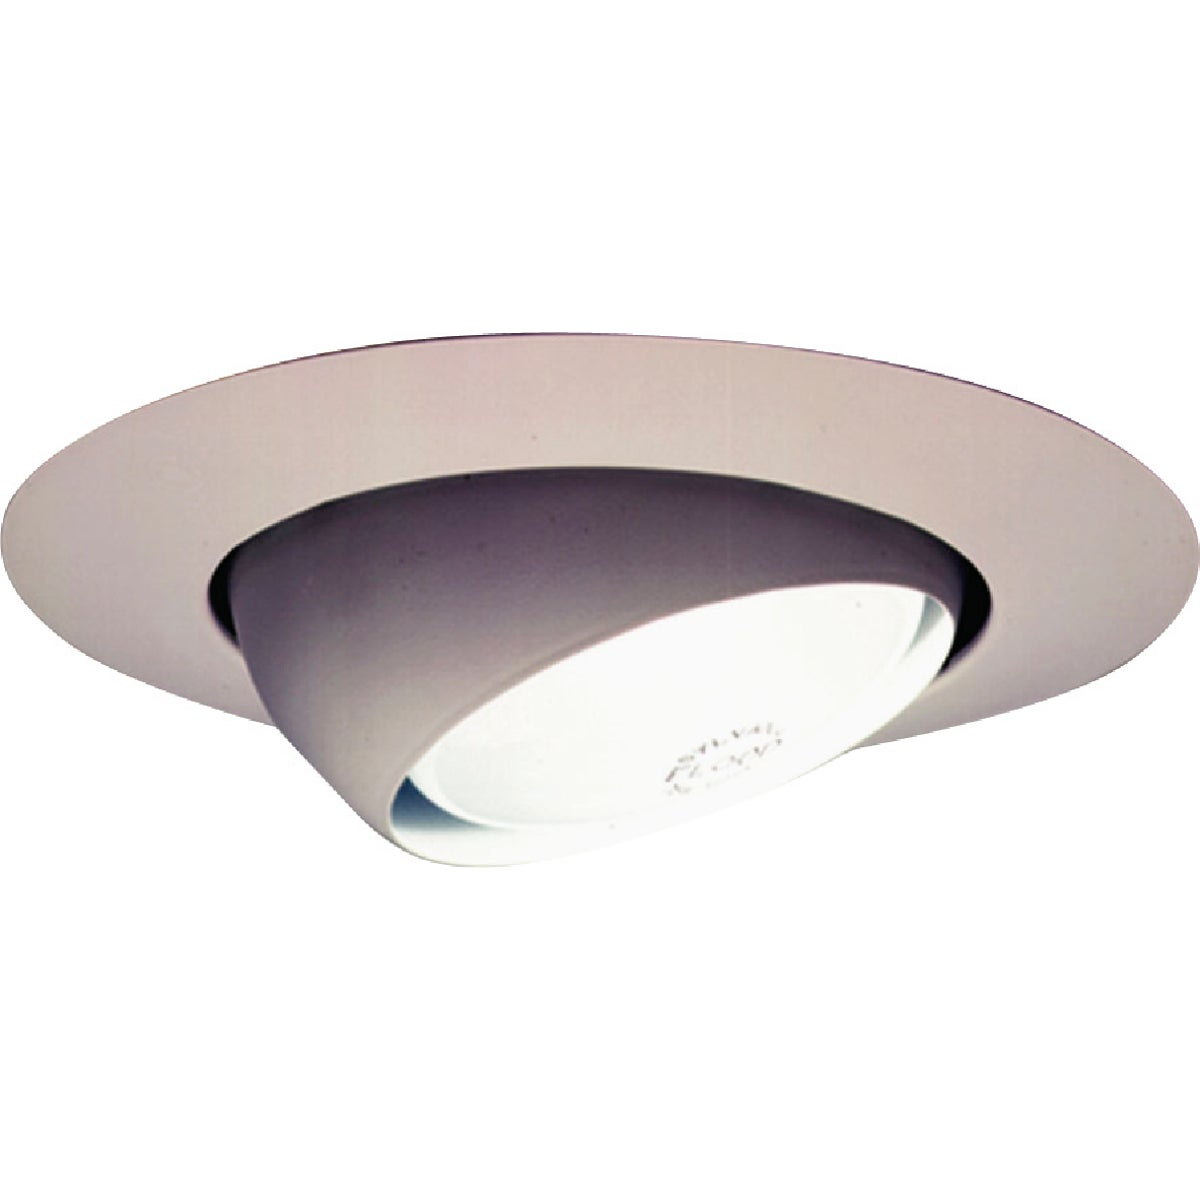 "6"" 30 DEGREE EYEBALL - 78P by Cooper Lighting"